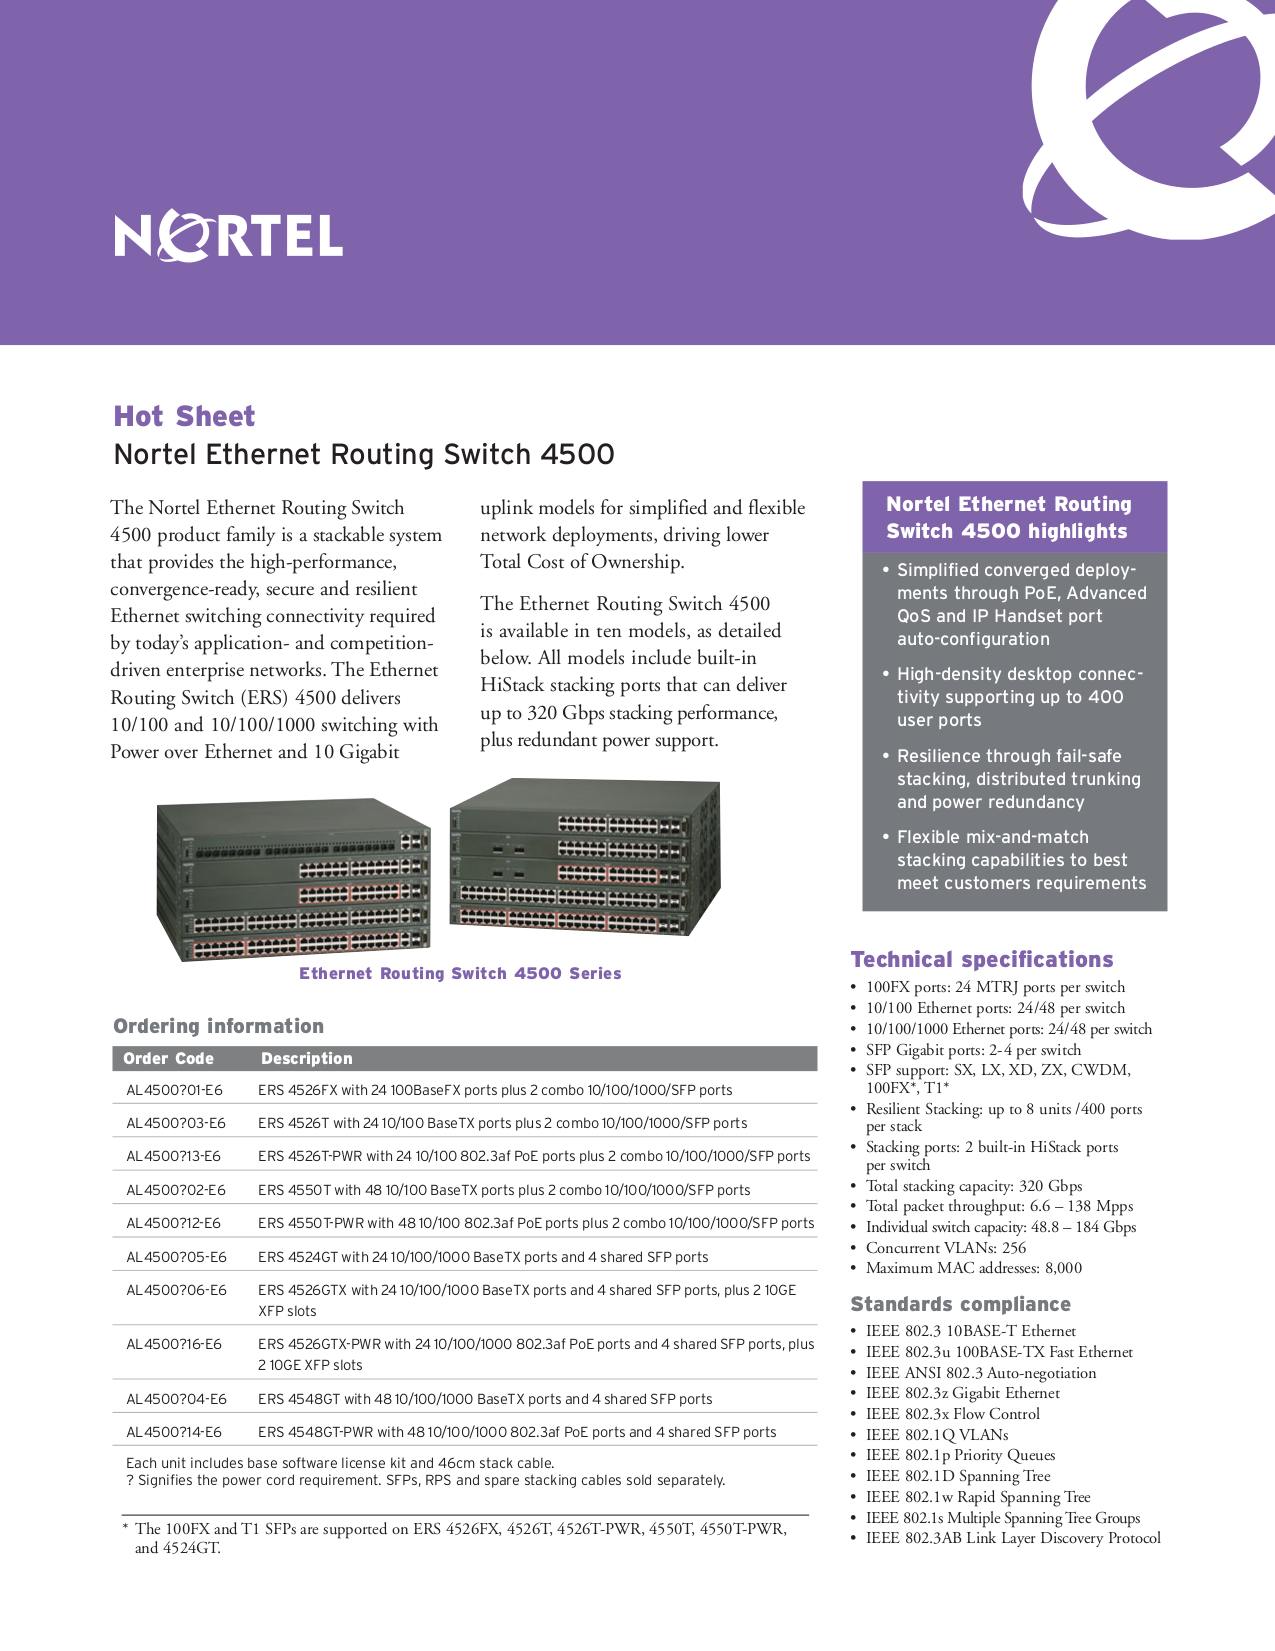 pdf for Nortel Switch 4548GT-PWR manual